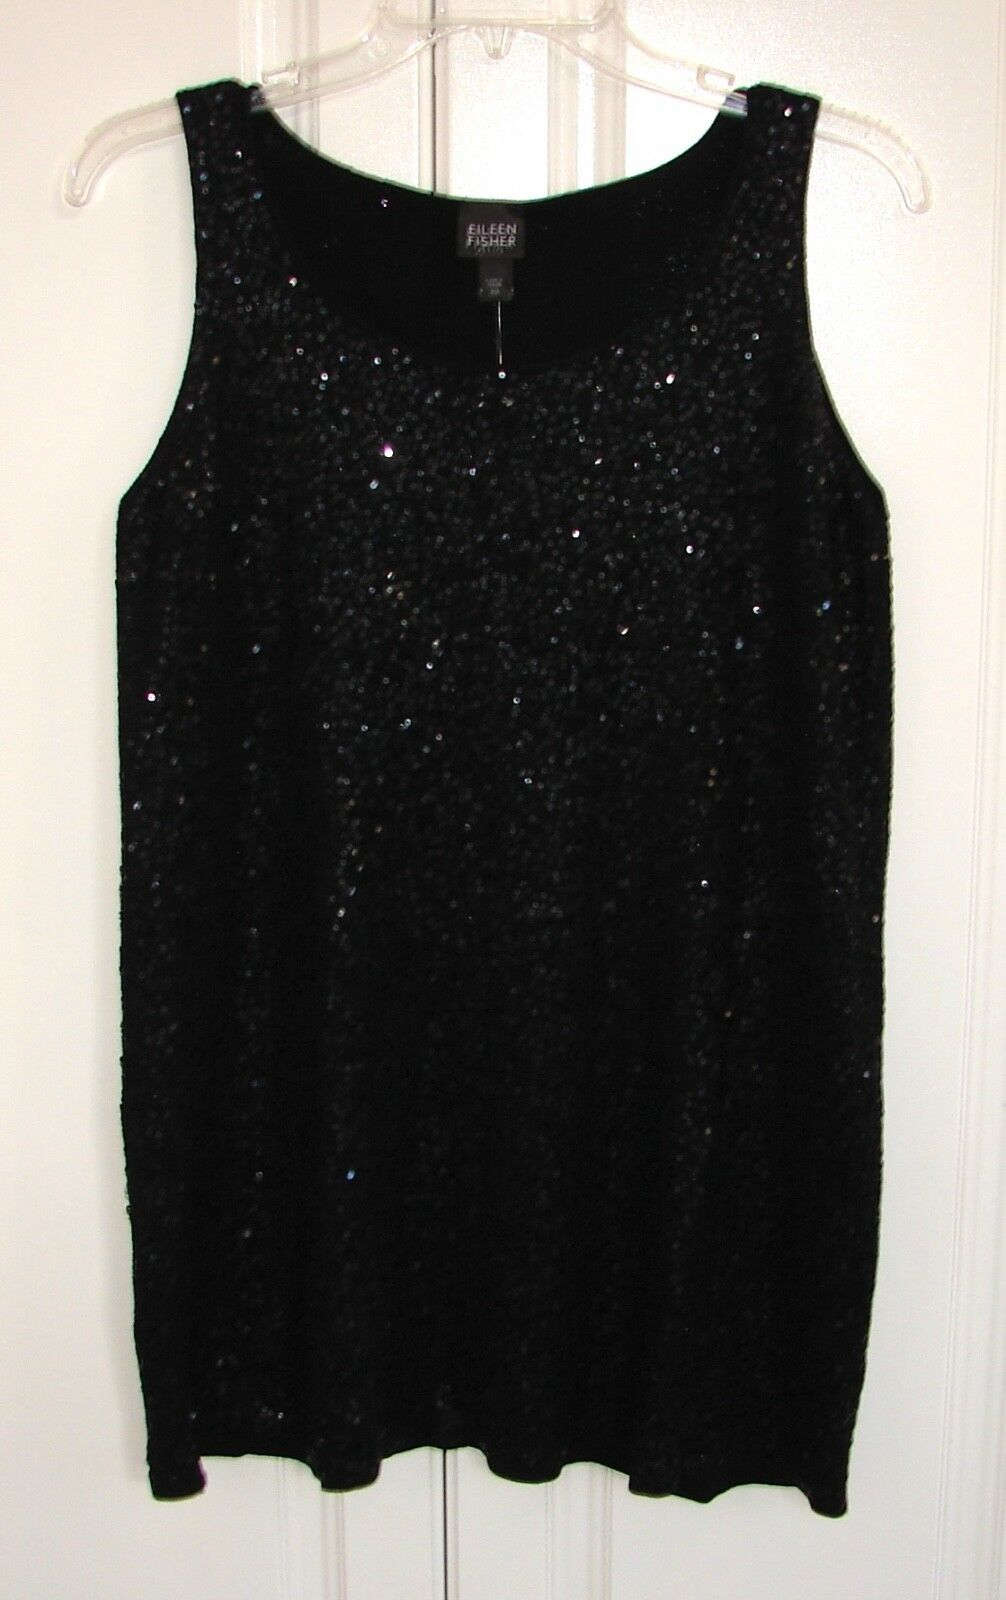 NWT Eileen Fisher sz Petite Medium schwarz sequined sleeveless tunic top